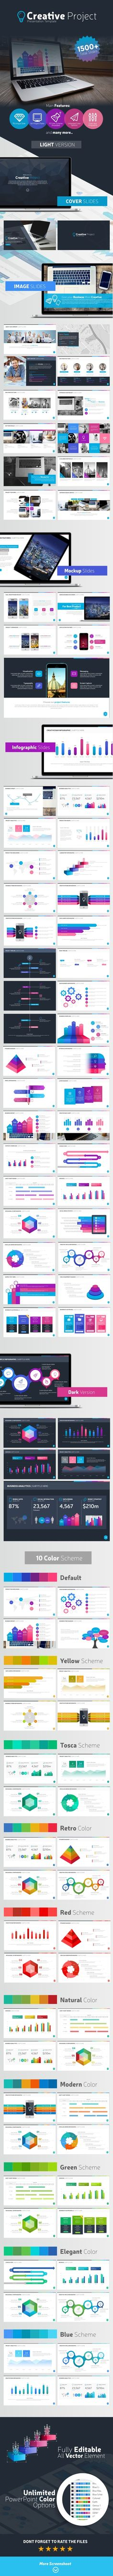 Creative Project Presentation Template #design Download: http://graphicriver.net/item/creative-project-presentation-template/12093598?ref=ksioks